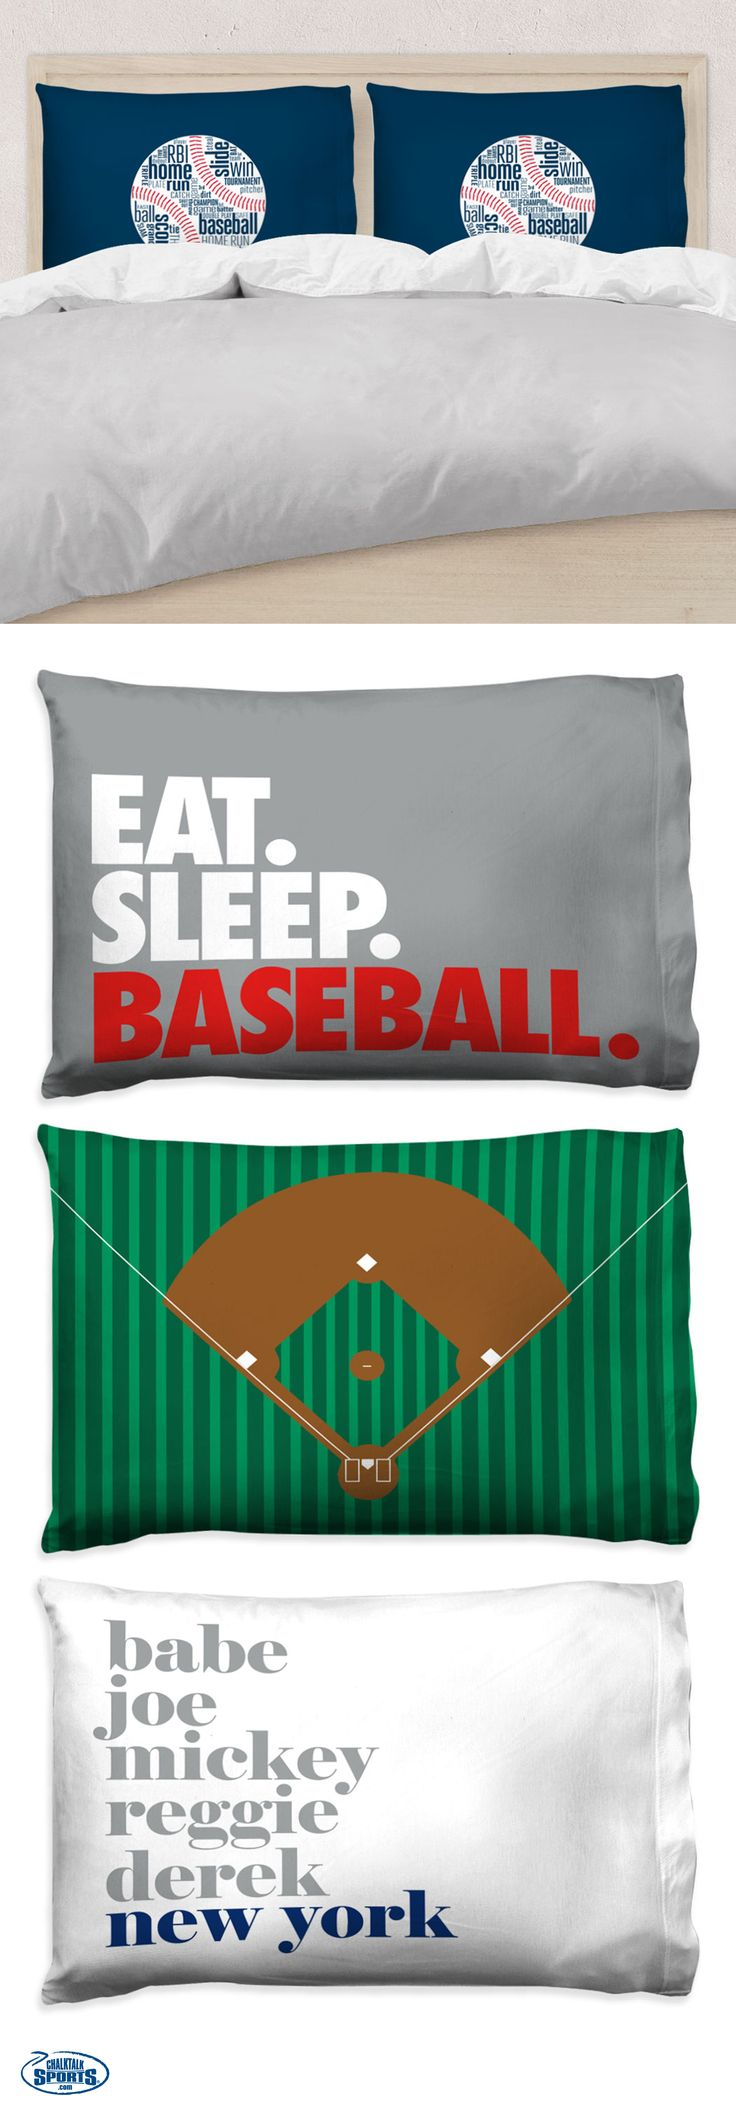 Our new baseball pillow cases are the perfect way to add a touch of baseball style and spirit to their room! They'll love our custom designs and personalized options!